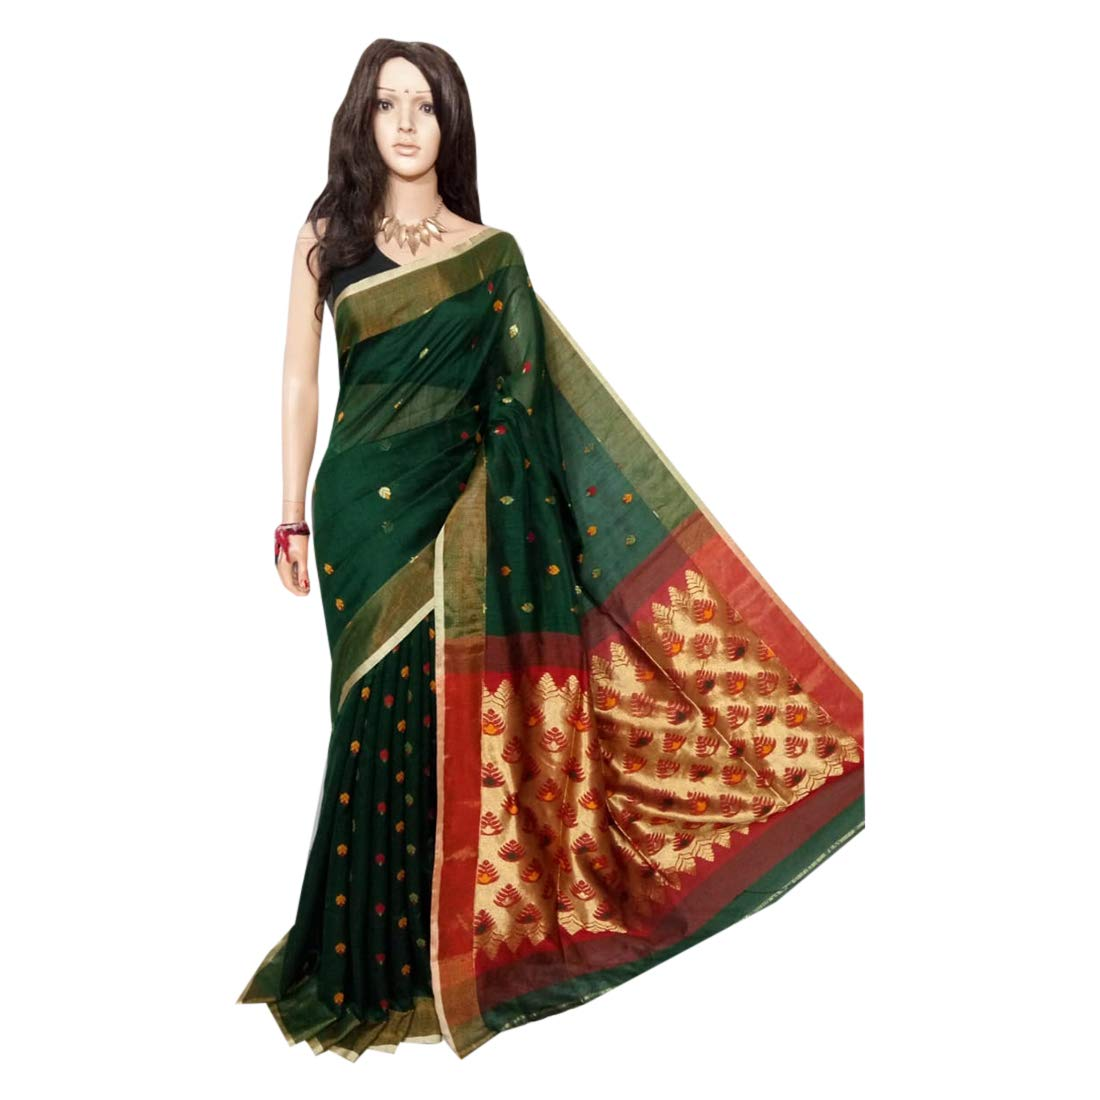 Indian Saree Green Ethnic dhakai jamdani Sari Designer Collection Sari Party Formal Women Wear 105a